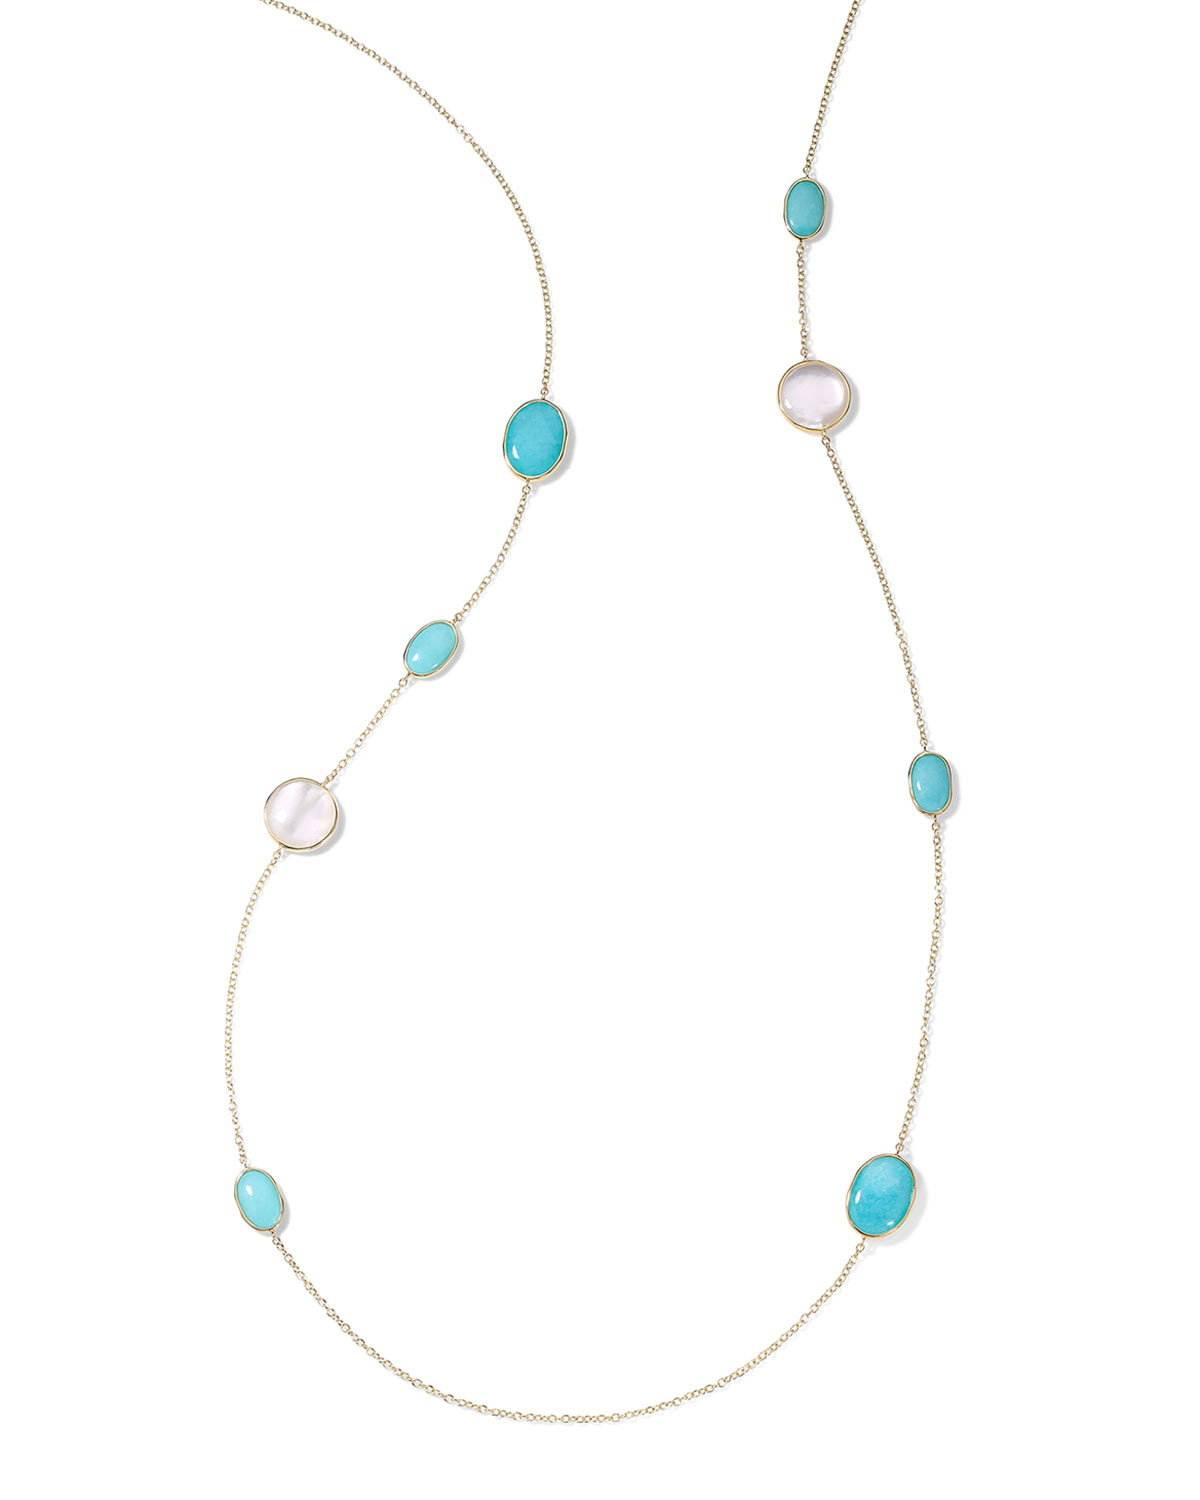 Ippolita 18K ROCK CANDY LUCE MEDIUM STONE LONG CHAIN NECKLACE IN CASCATA